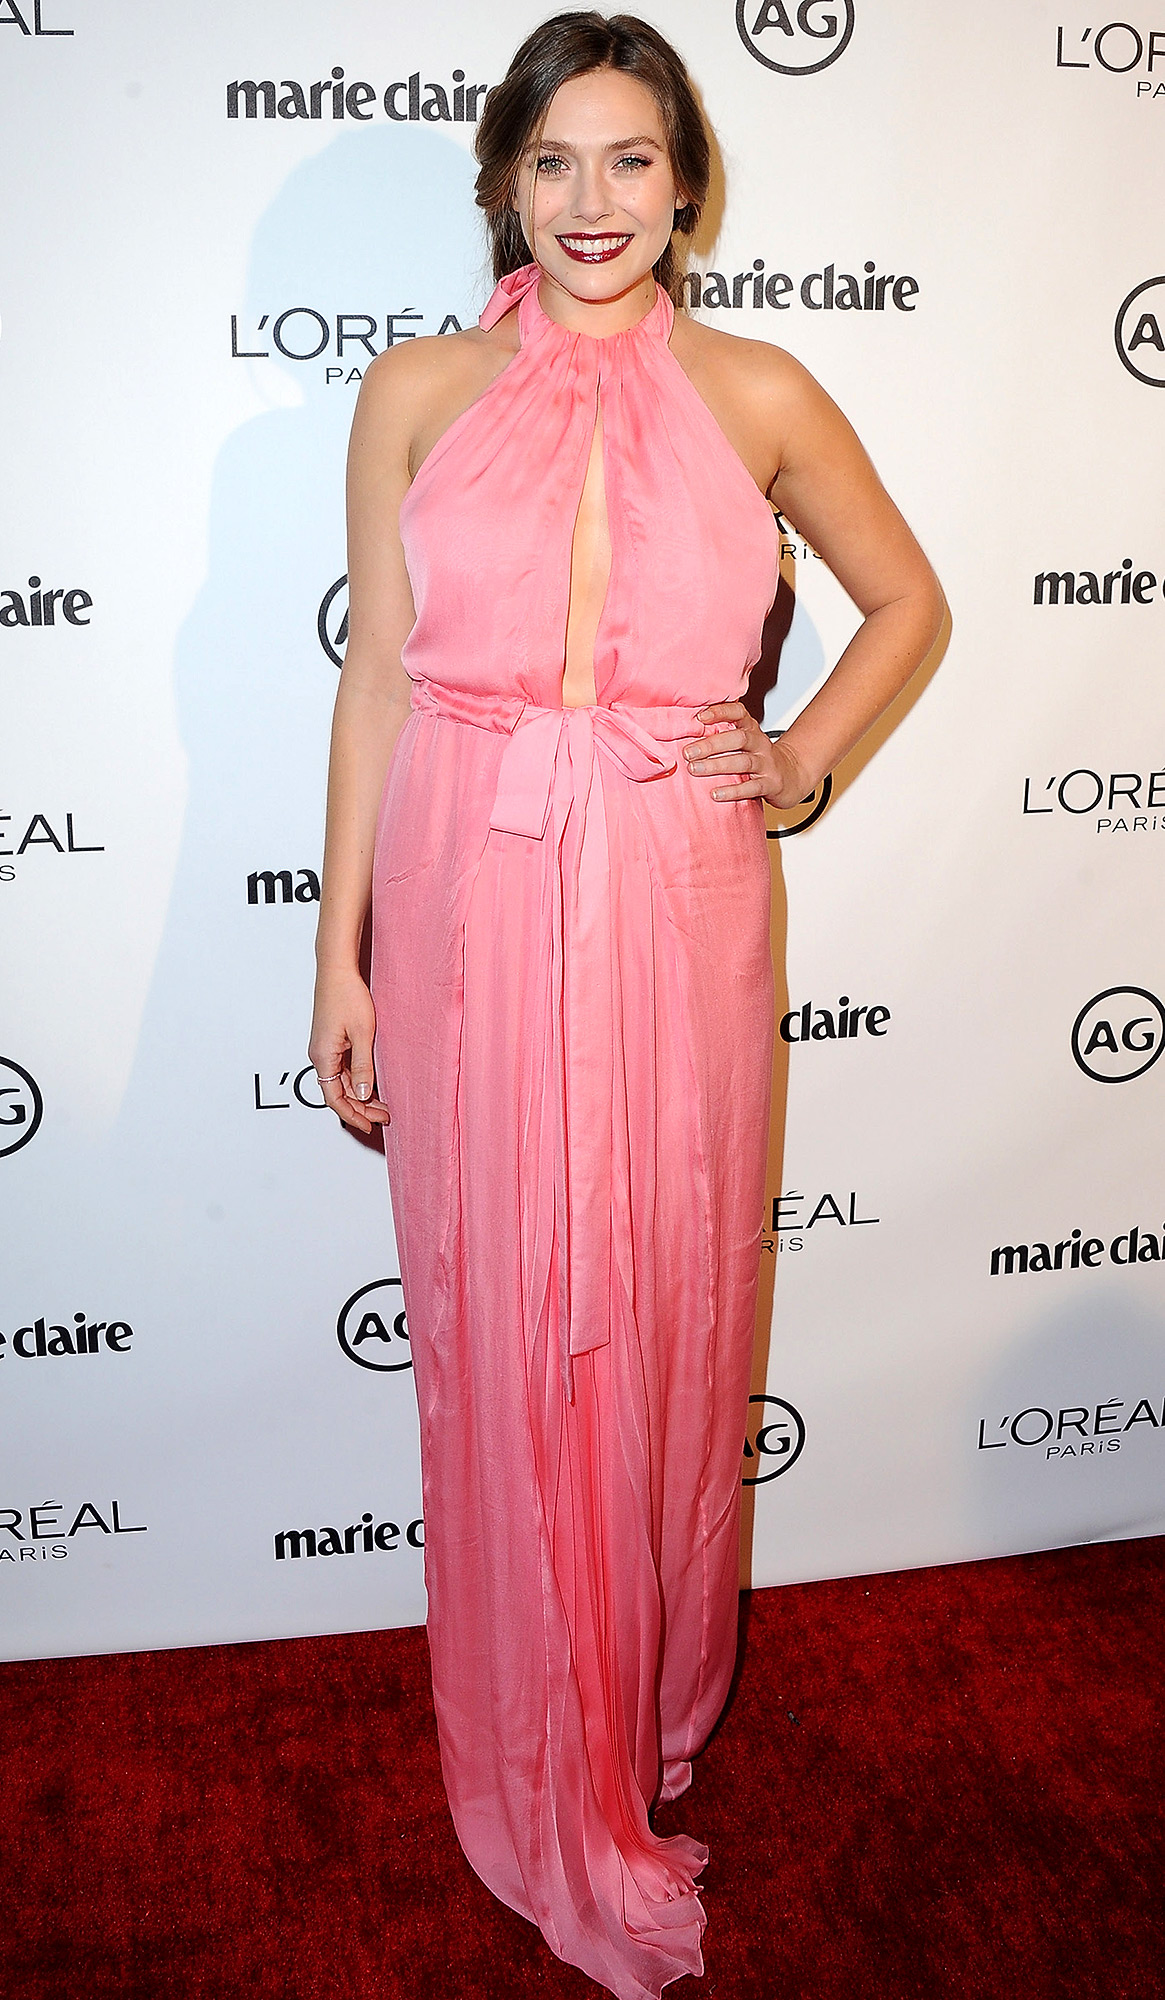 Marie Claire's Image Maker Awards 2017 - Arrivals